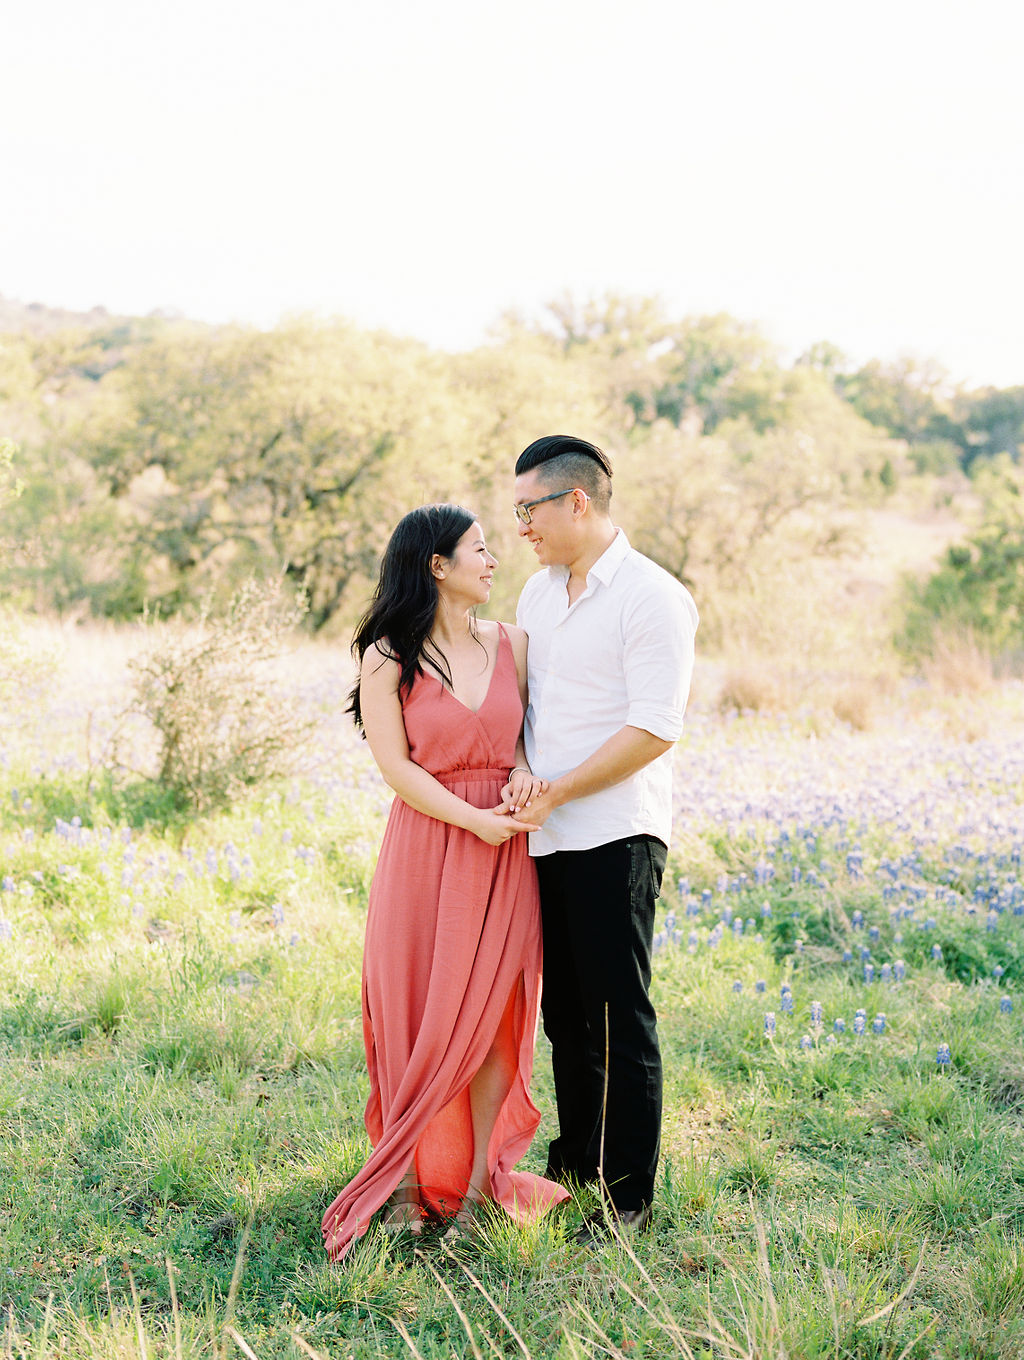 Austin-Film-Wedding-Photographer-Engagement-Session-Fun-adventure-outdoor-fine-art-4.jpg